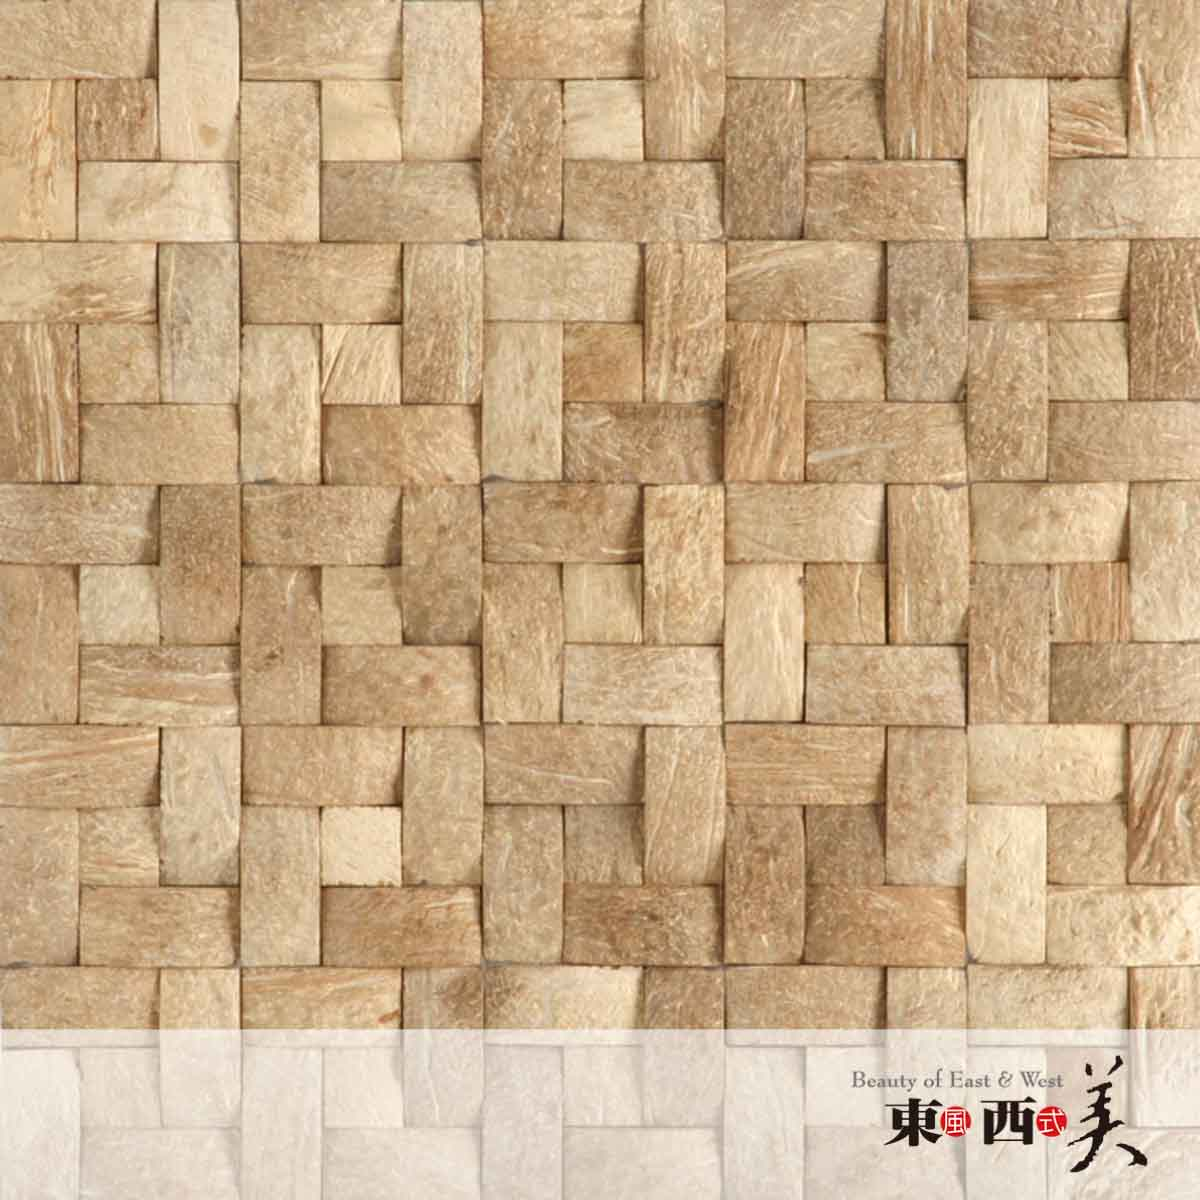 Coconut Shell Tiles Wall Paneling for Sale | Coconut Tiles Suppliers